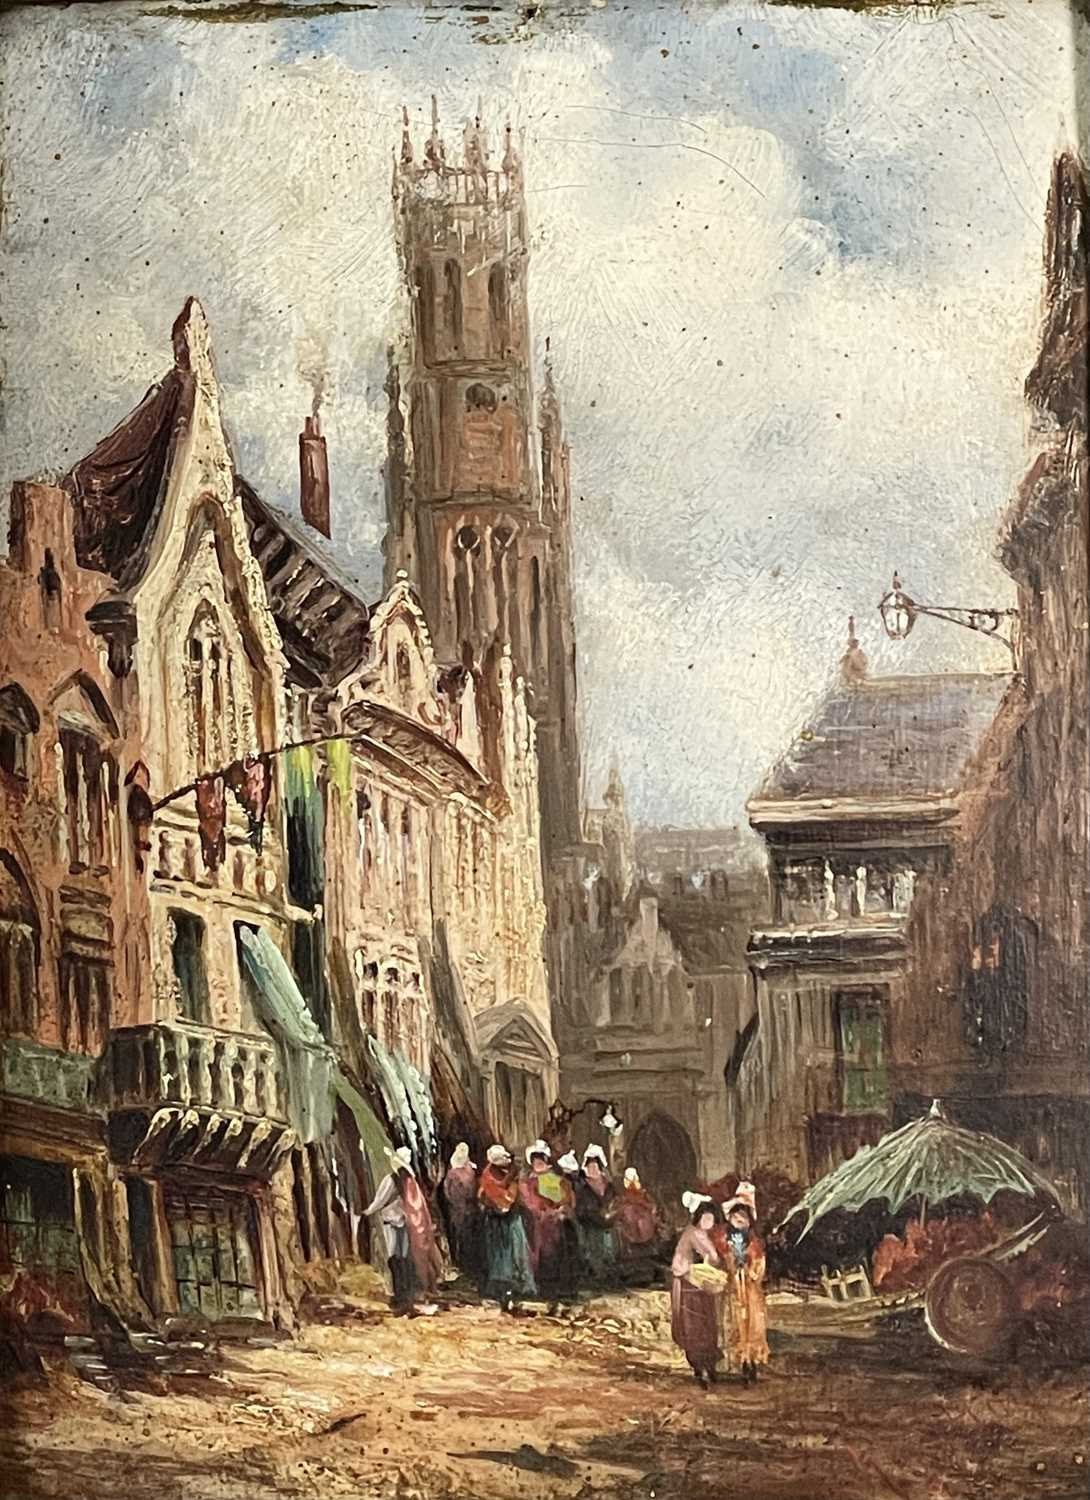 Follower of Henry Thomas SCHAEFER (1854-1915) Town Streets Oil on canvas Indistinctly signed - Image 4 of 7